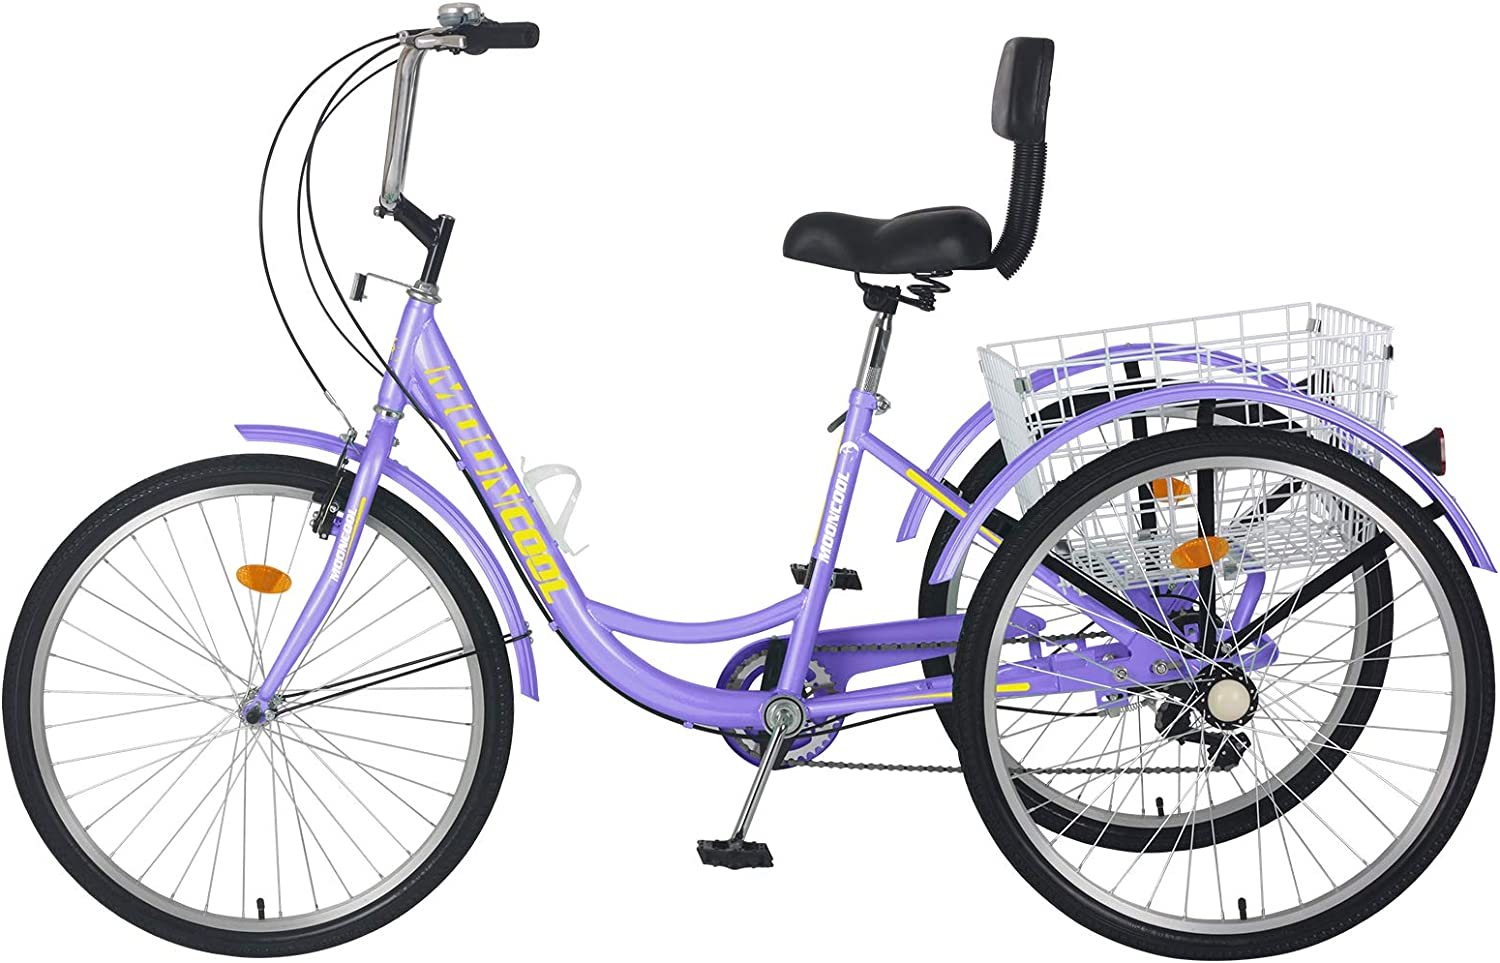 VANELL Adult Tricycle for Women 7 Speed Tricycle Adult Large Wheels Trike Cruise Bike 3 Wheeled Bicycle with Basket Especially for The Elder Shopping Exercise Recreation